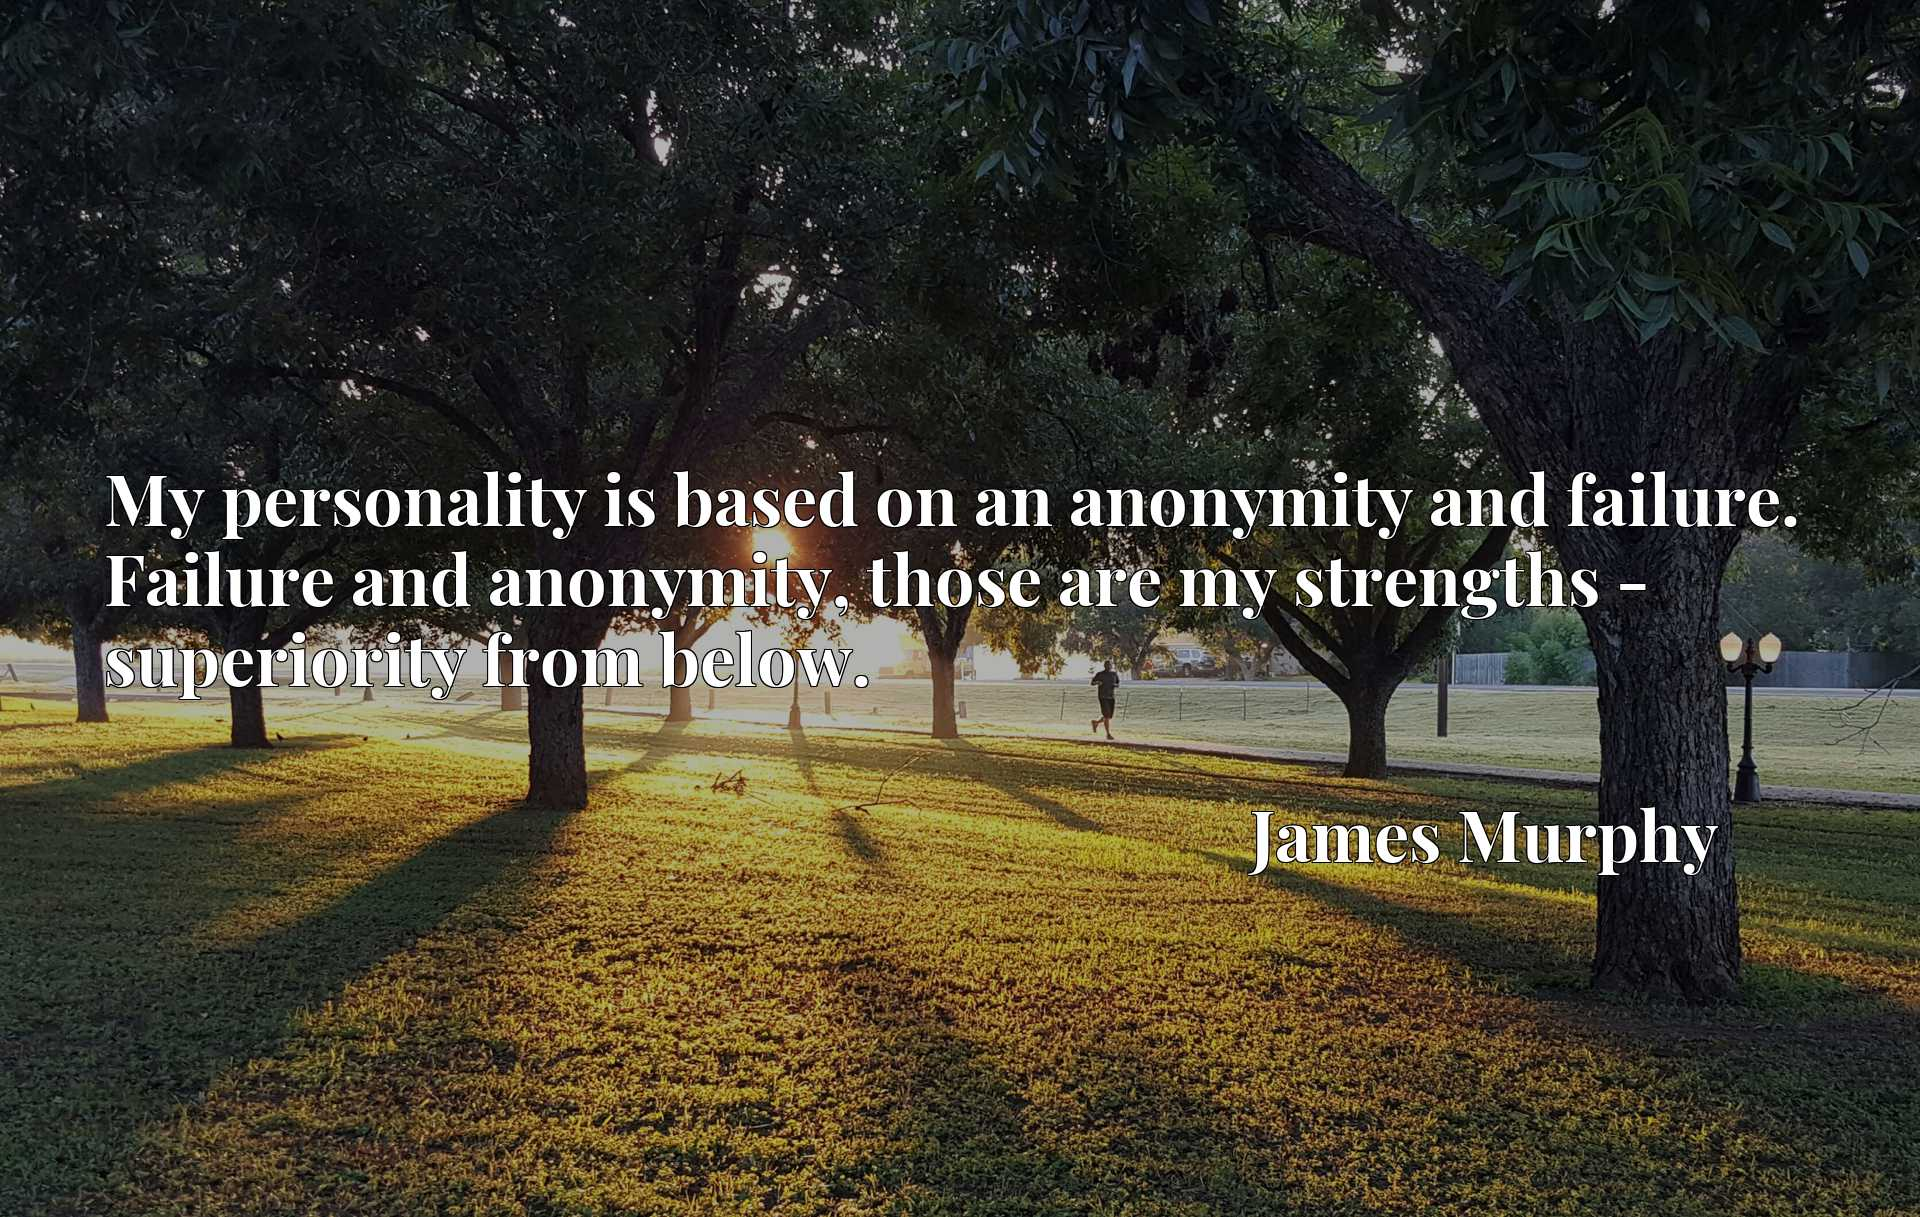 My personality is based on an anonymity and failure. Failure and anonymity, those are my strengths - superiority from below.